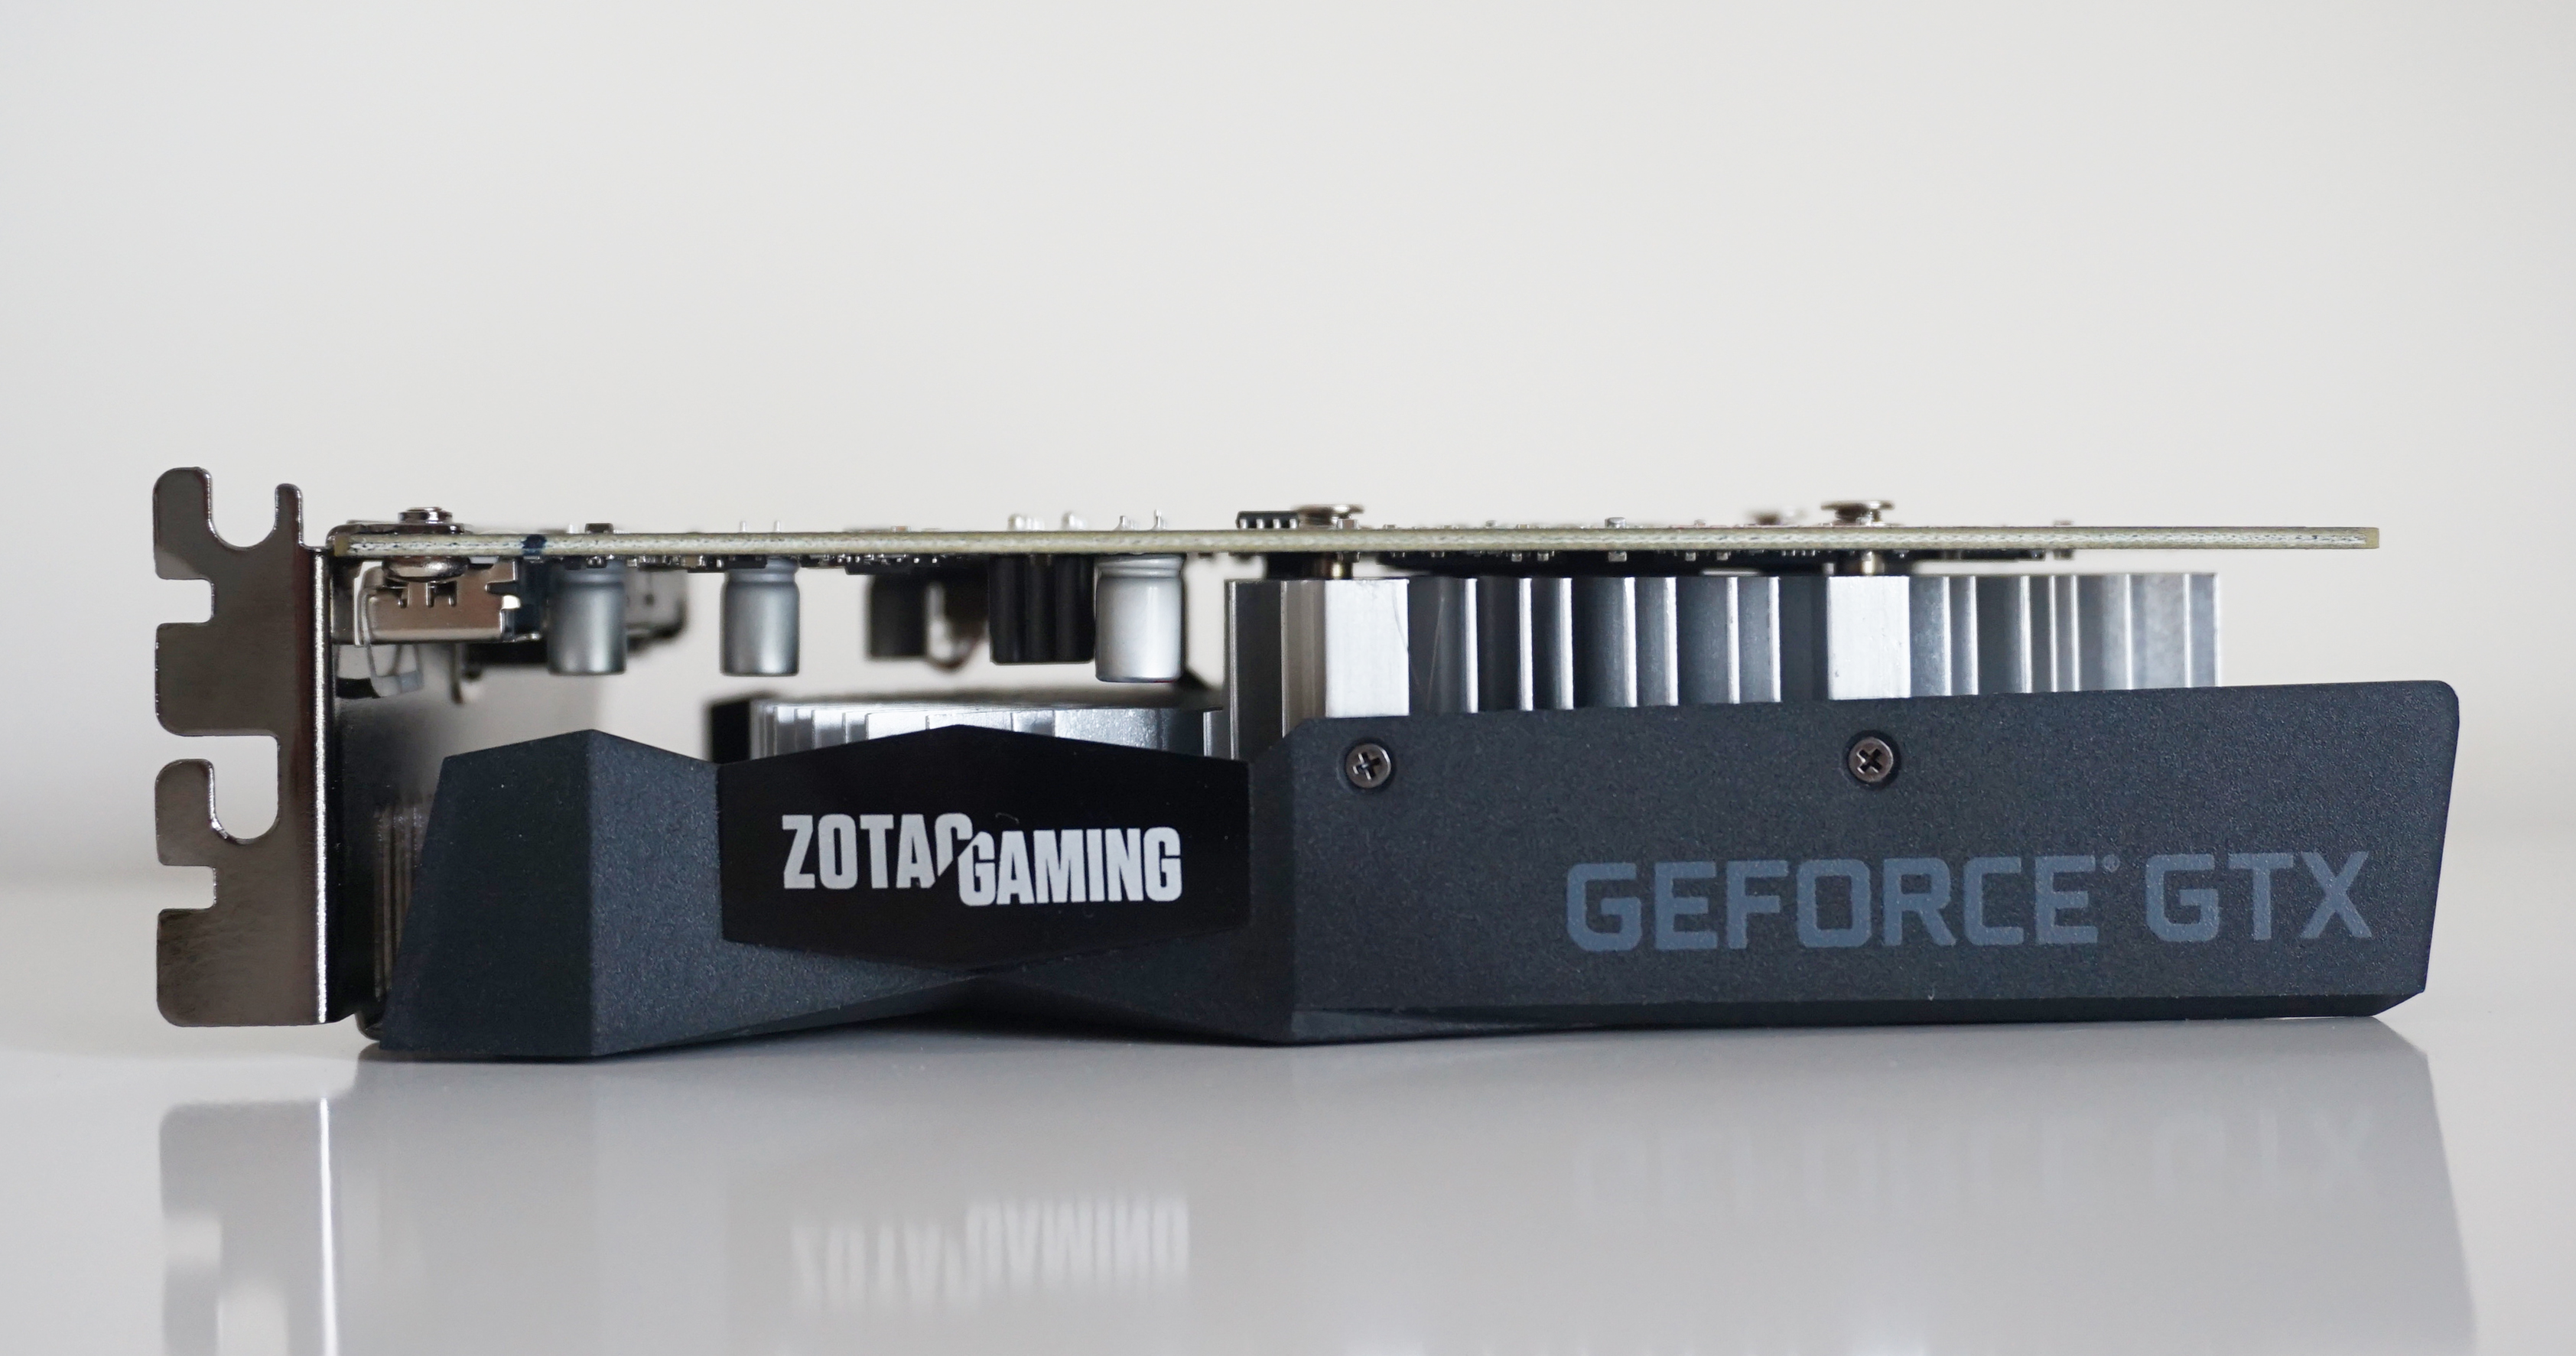 Nvidia GeForce GTX 1650 review: 1080p gaming on a budget | Rock